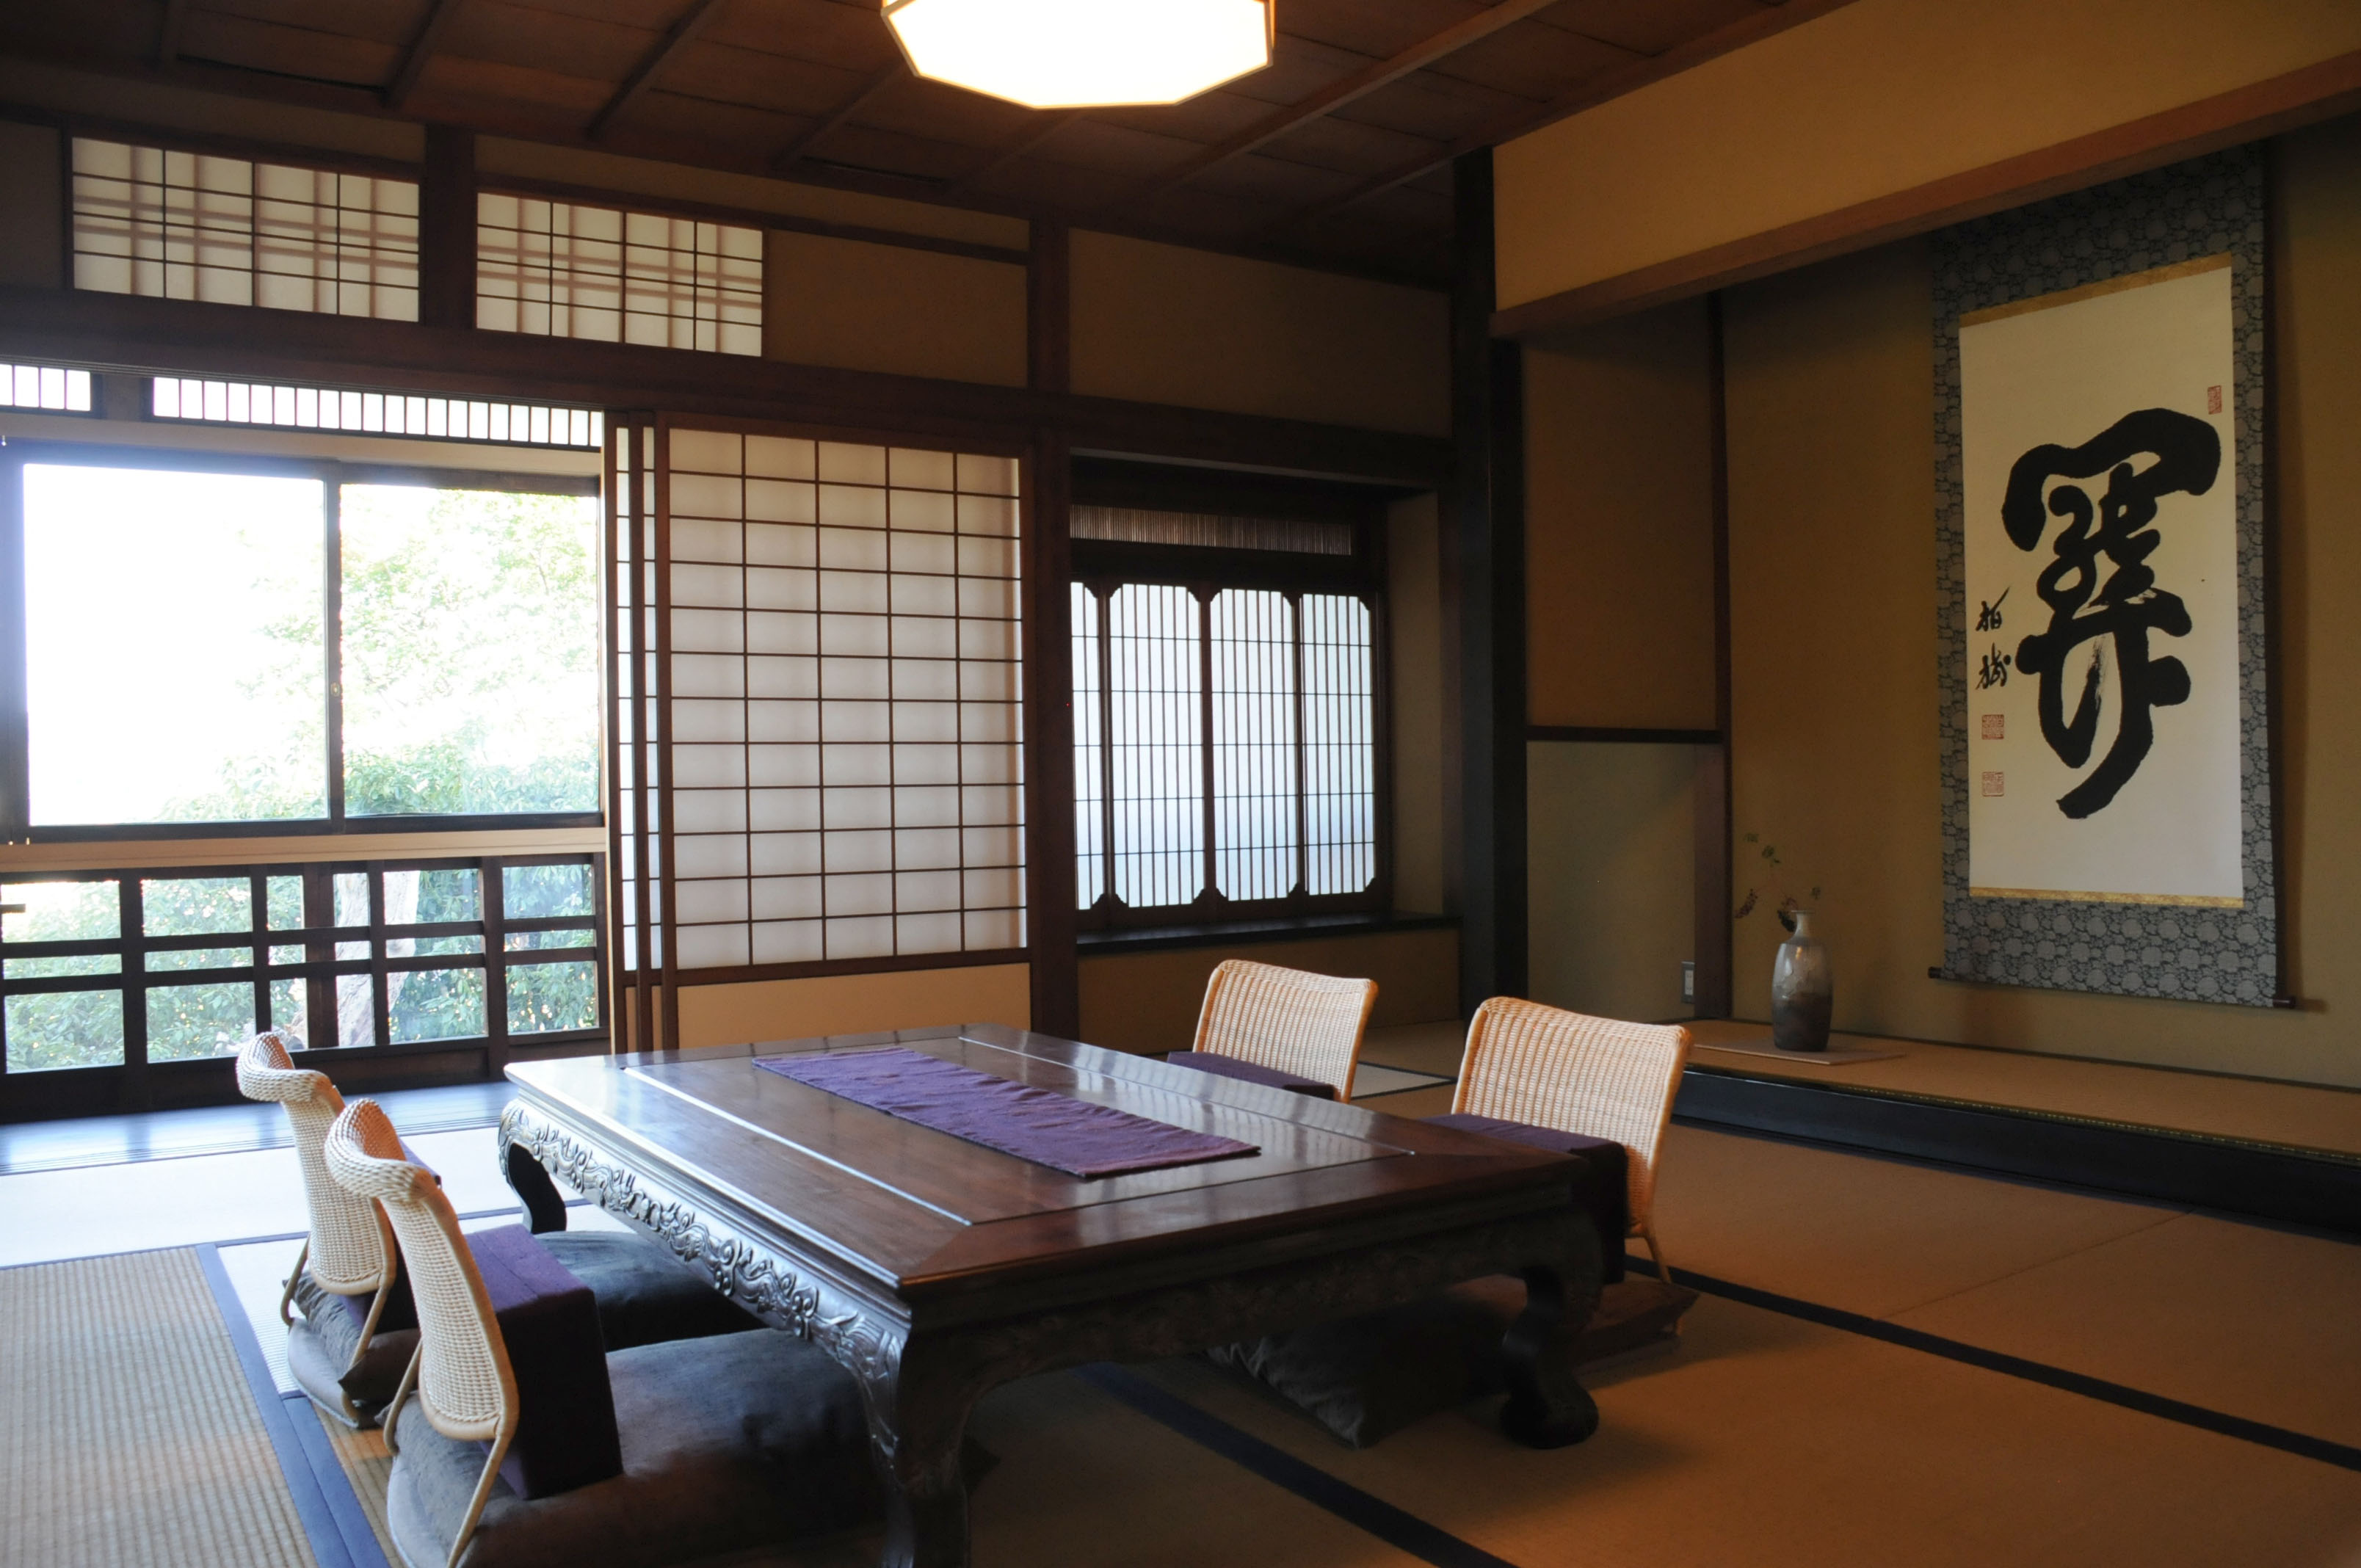 Renovating business and hope in onomichi the japan times for Small japanese room design